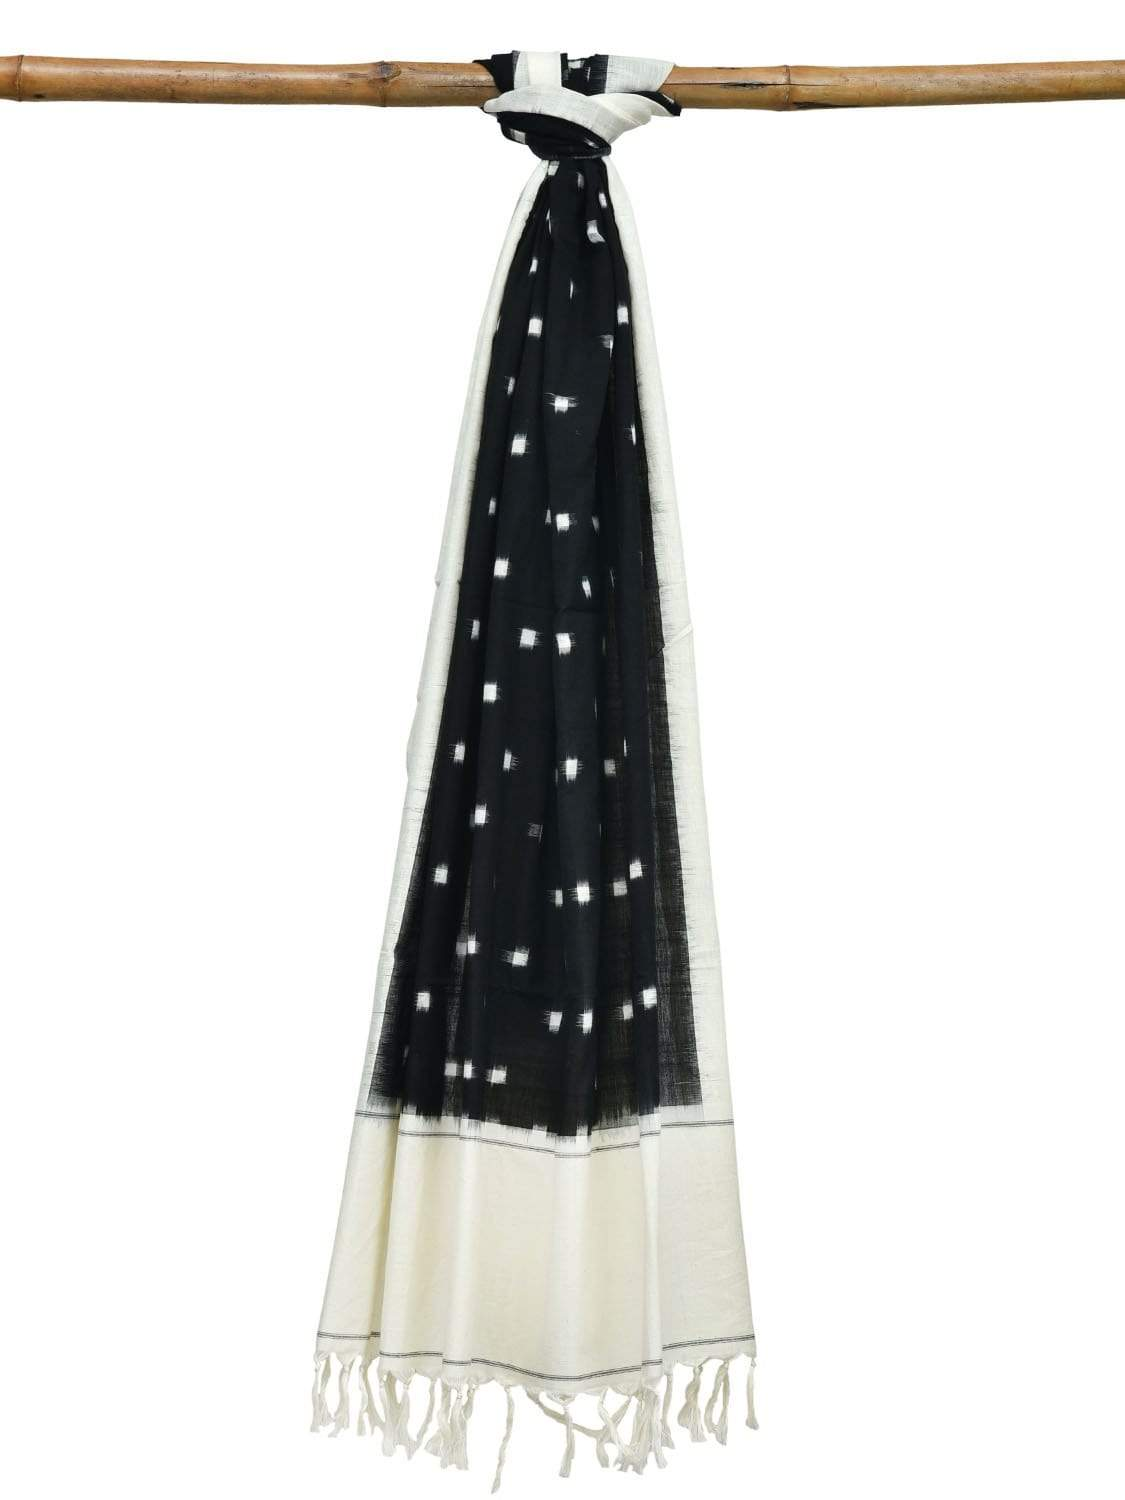 Black and White Pochampally Ikat Cotton Handloom Dupatta with Dots Design ds1896